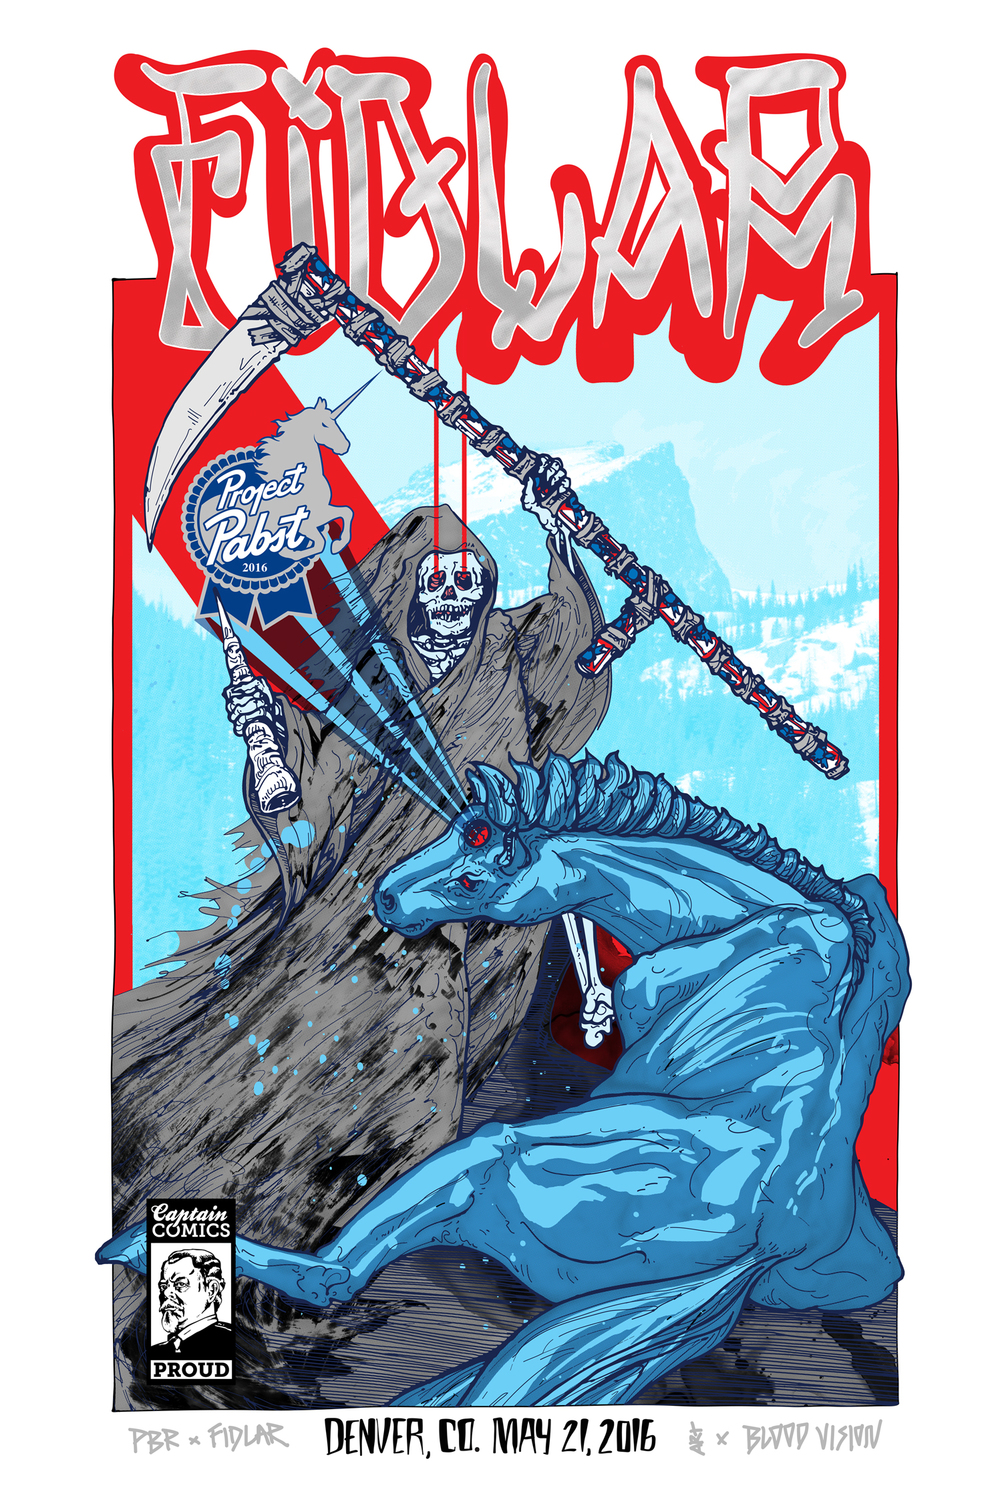 Project_pabst_fidlar_sheets_partyreaper_vs_bluecifer_MOUNTAINS_BG.jpg